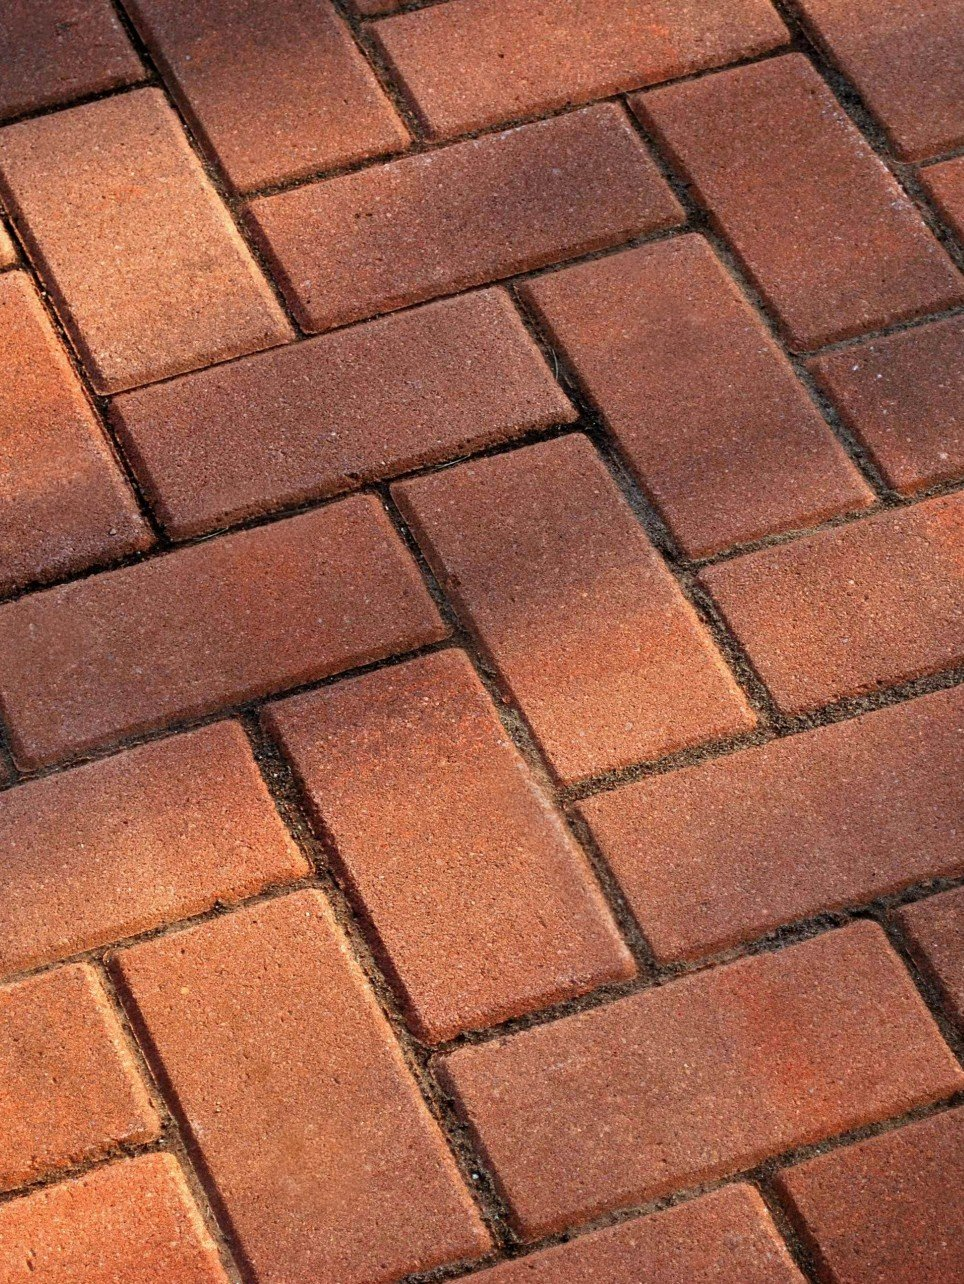 Block Paving Companies Sparkbrook